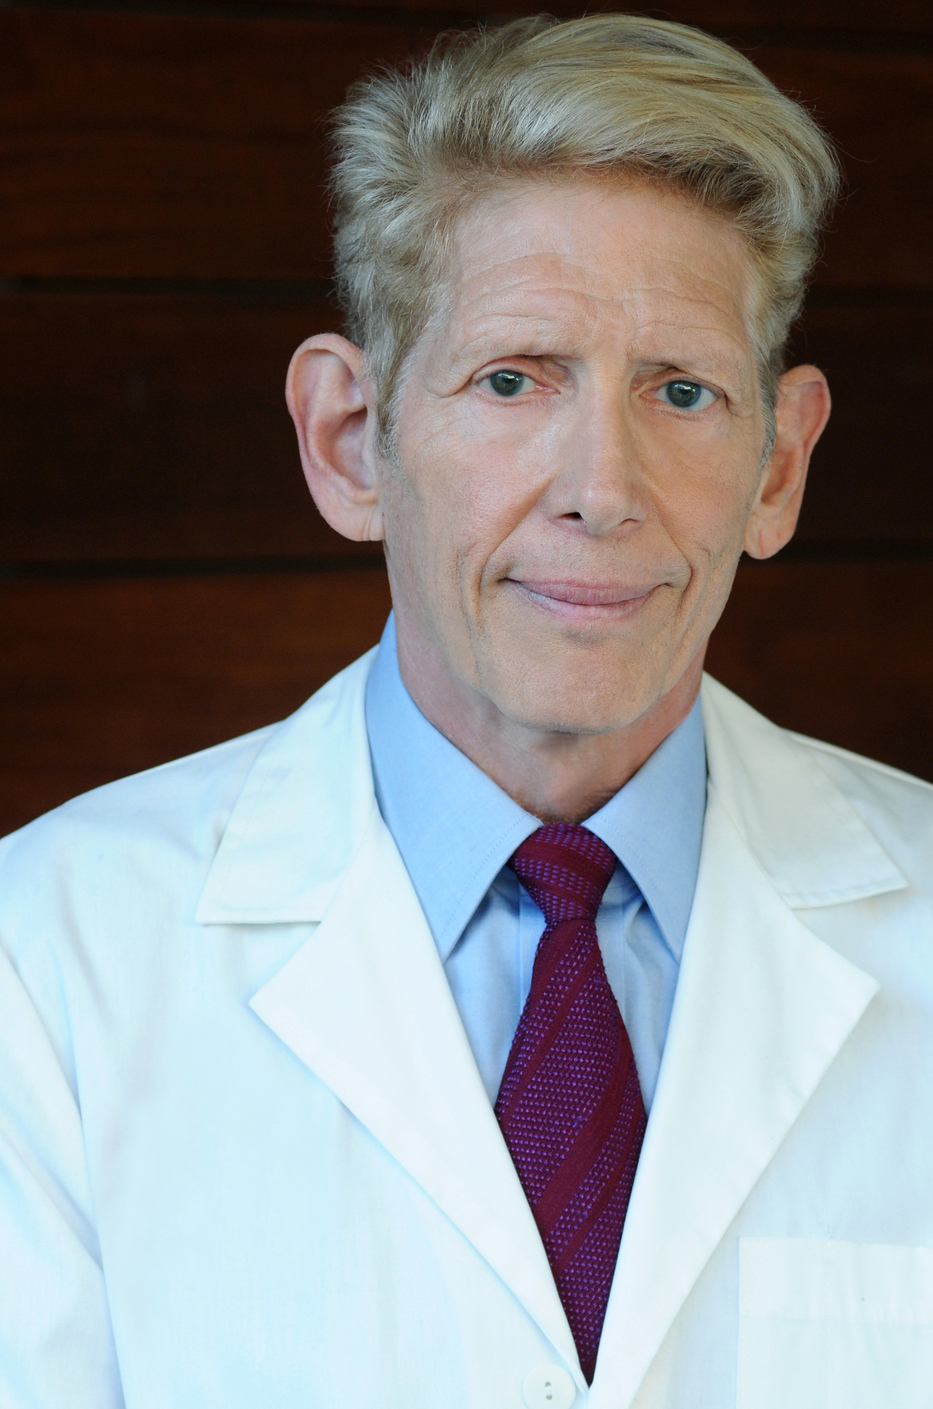 Dr. Richard Kaufman